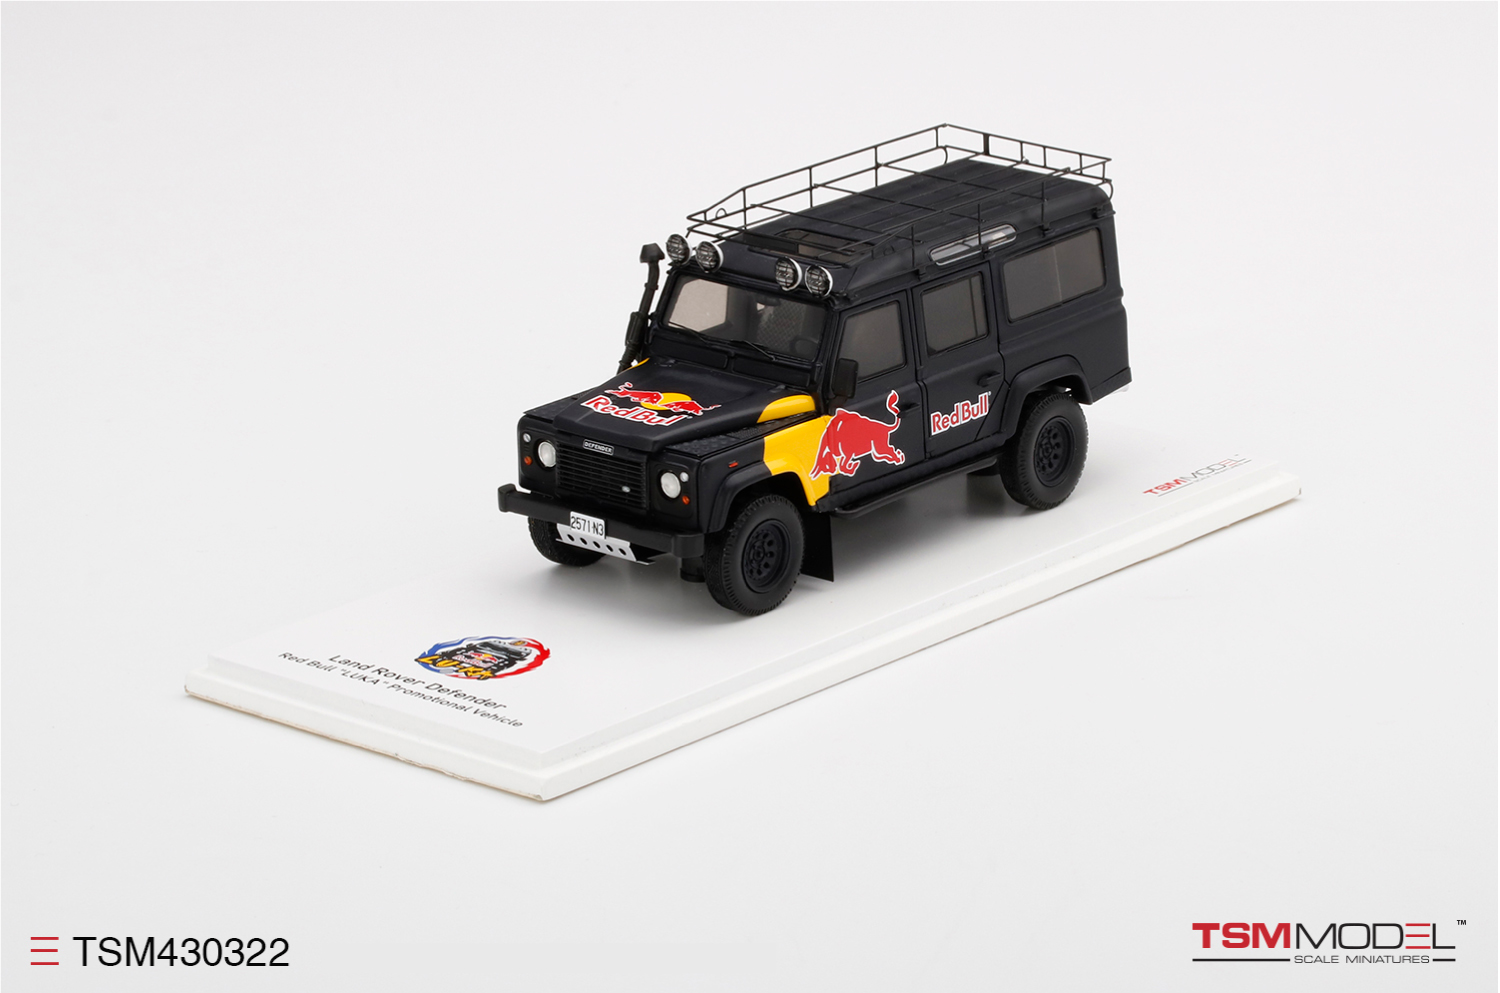 Land Rover Defender Red Bull LUKA